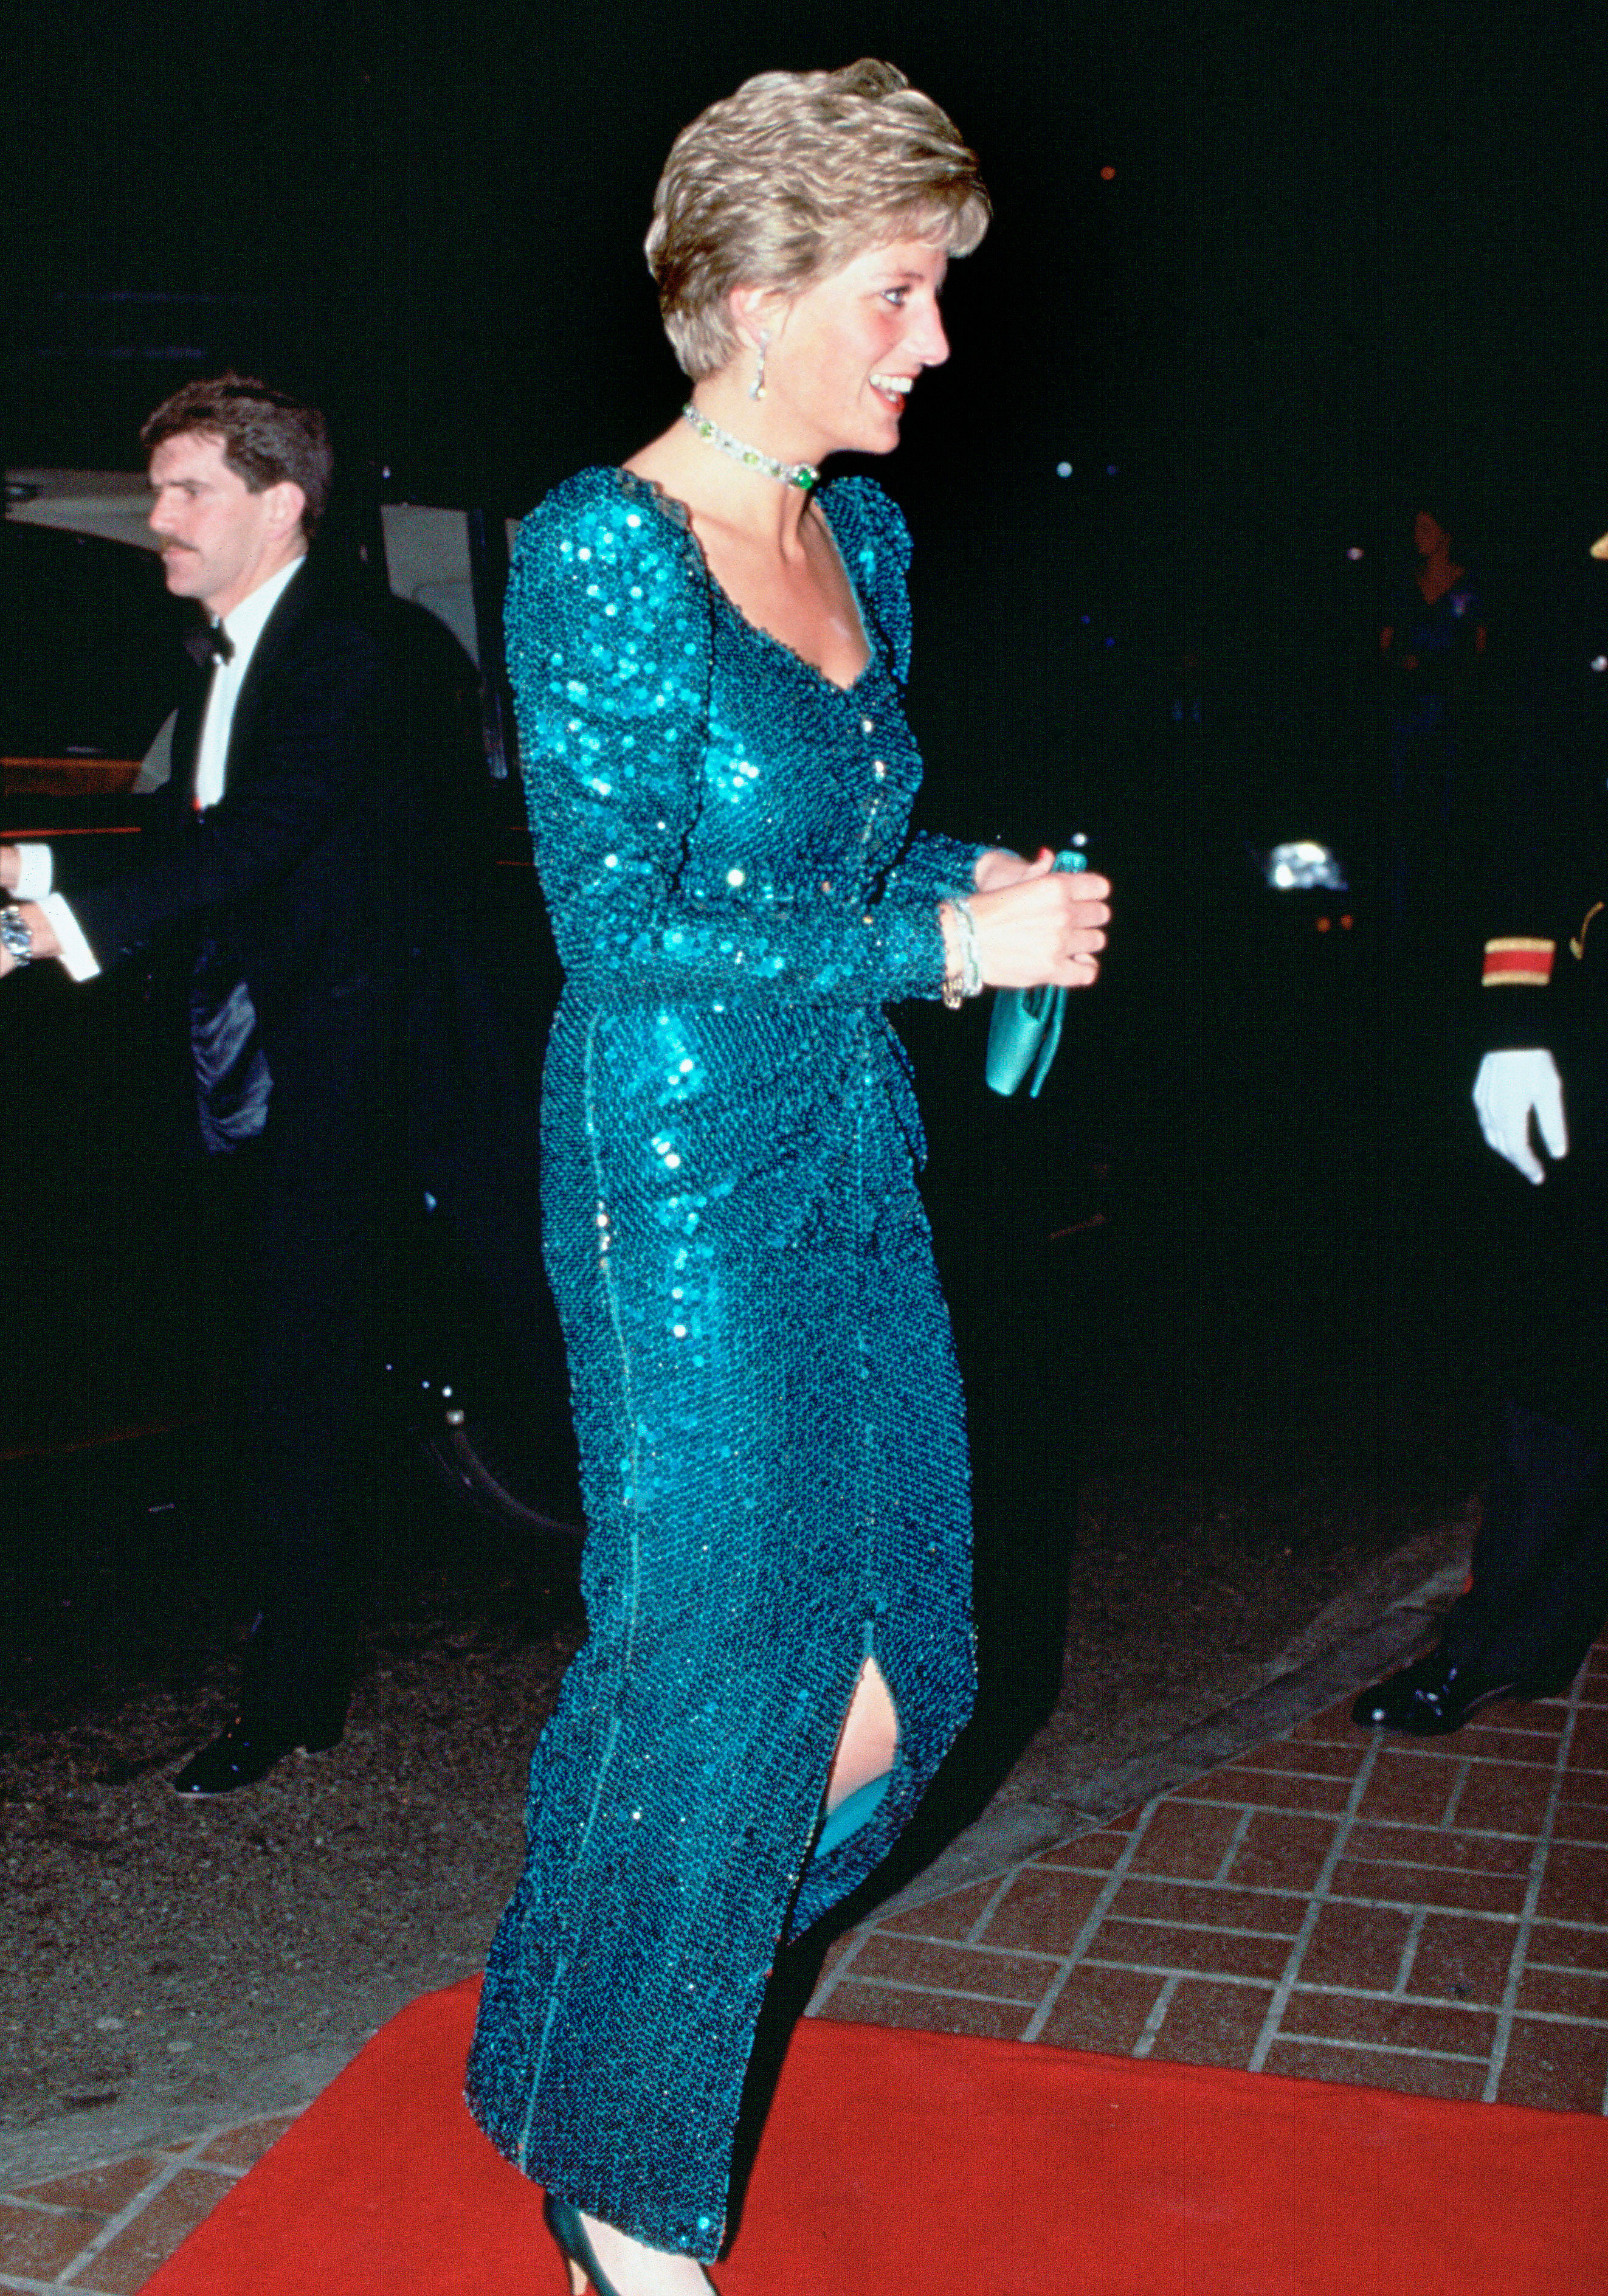 Princess Diana\'s Blue Sequined Dress Up for Auction